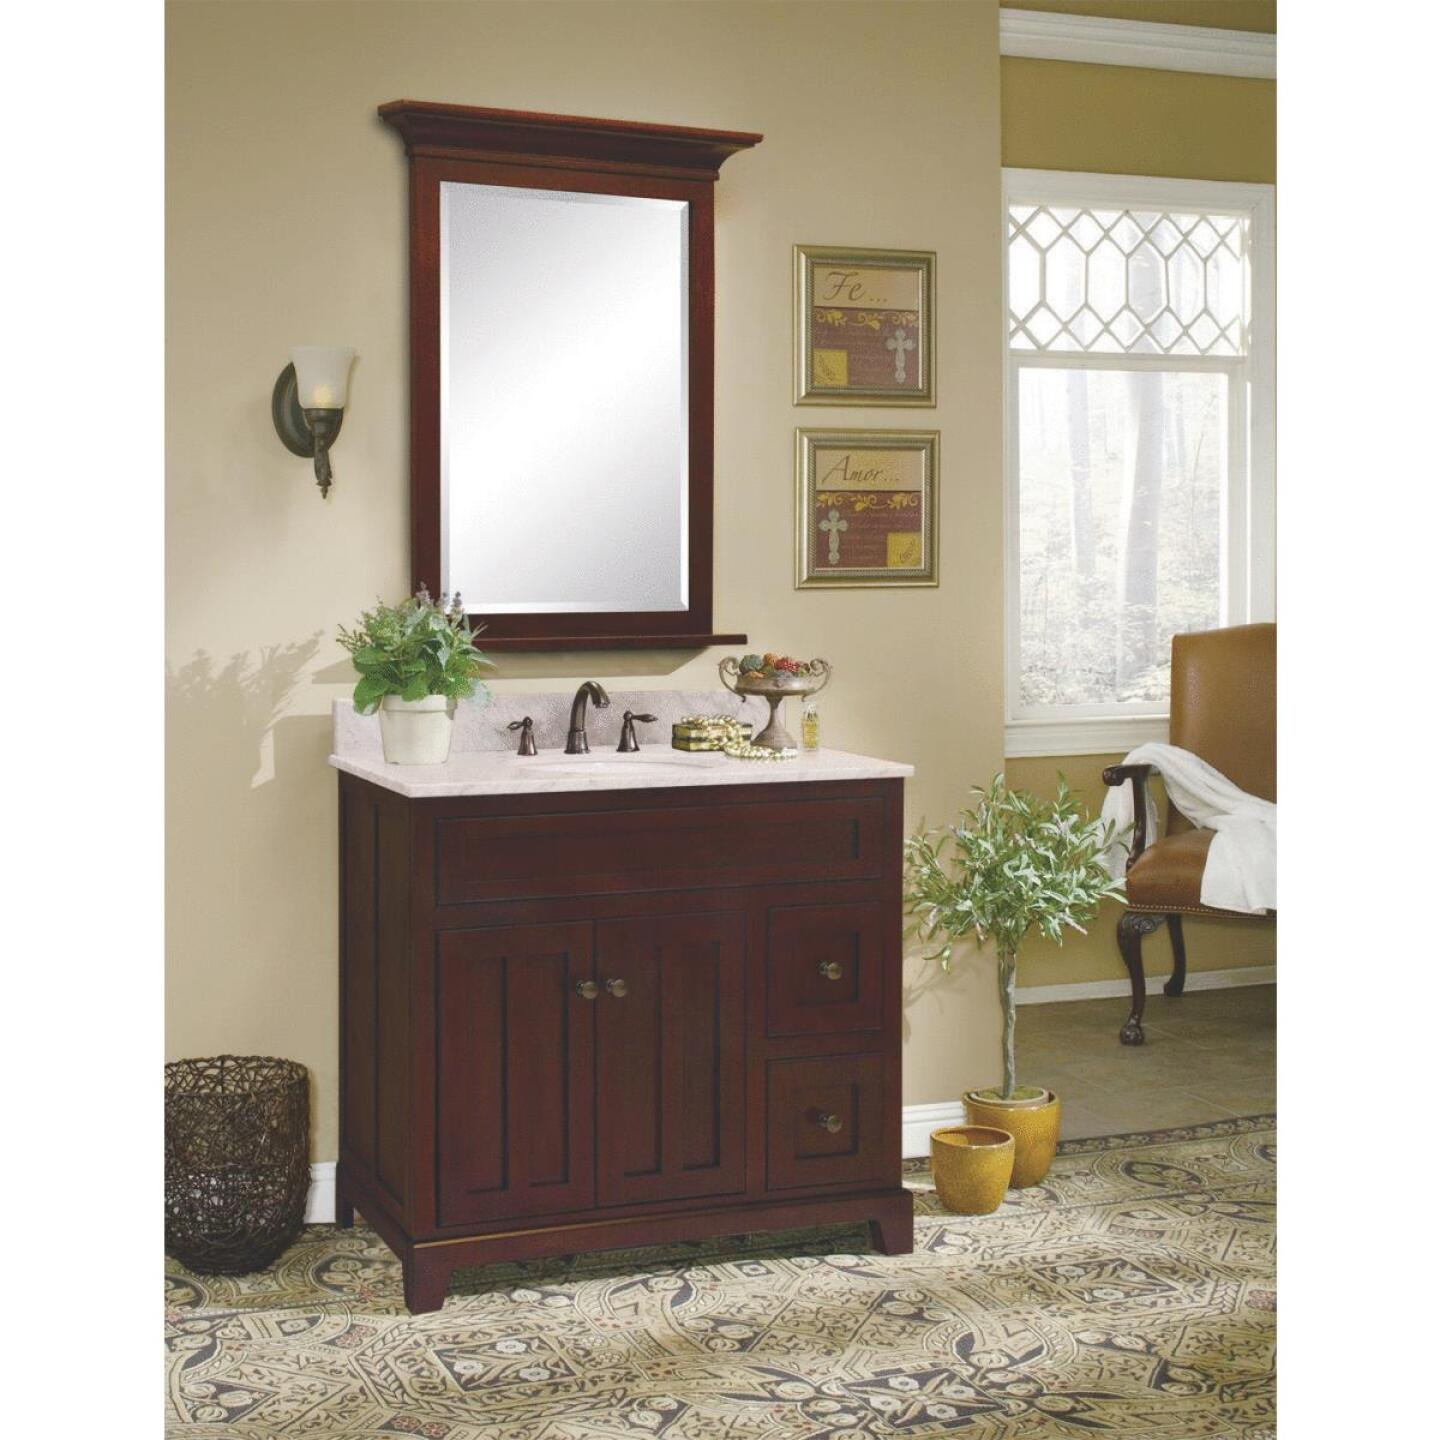 Sunny Wood Grand Haven Cherry 36 In. W x 34 In. H x 21 In. D Vanity Base, 2 Door/2 Drawer Image 2